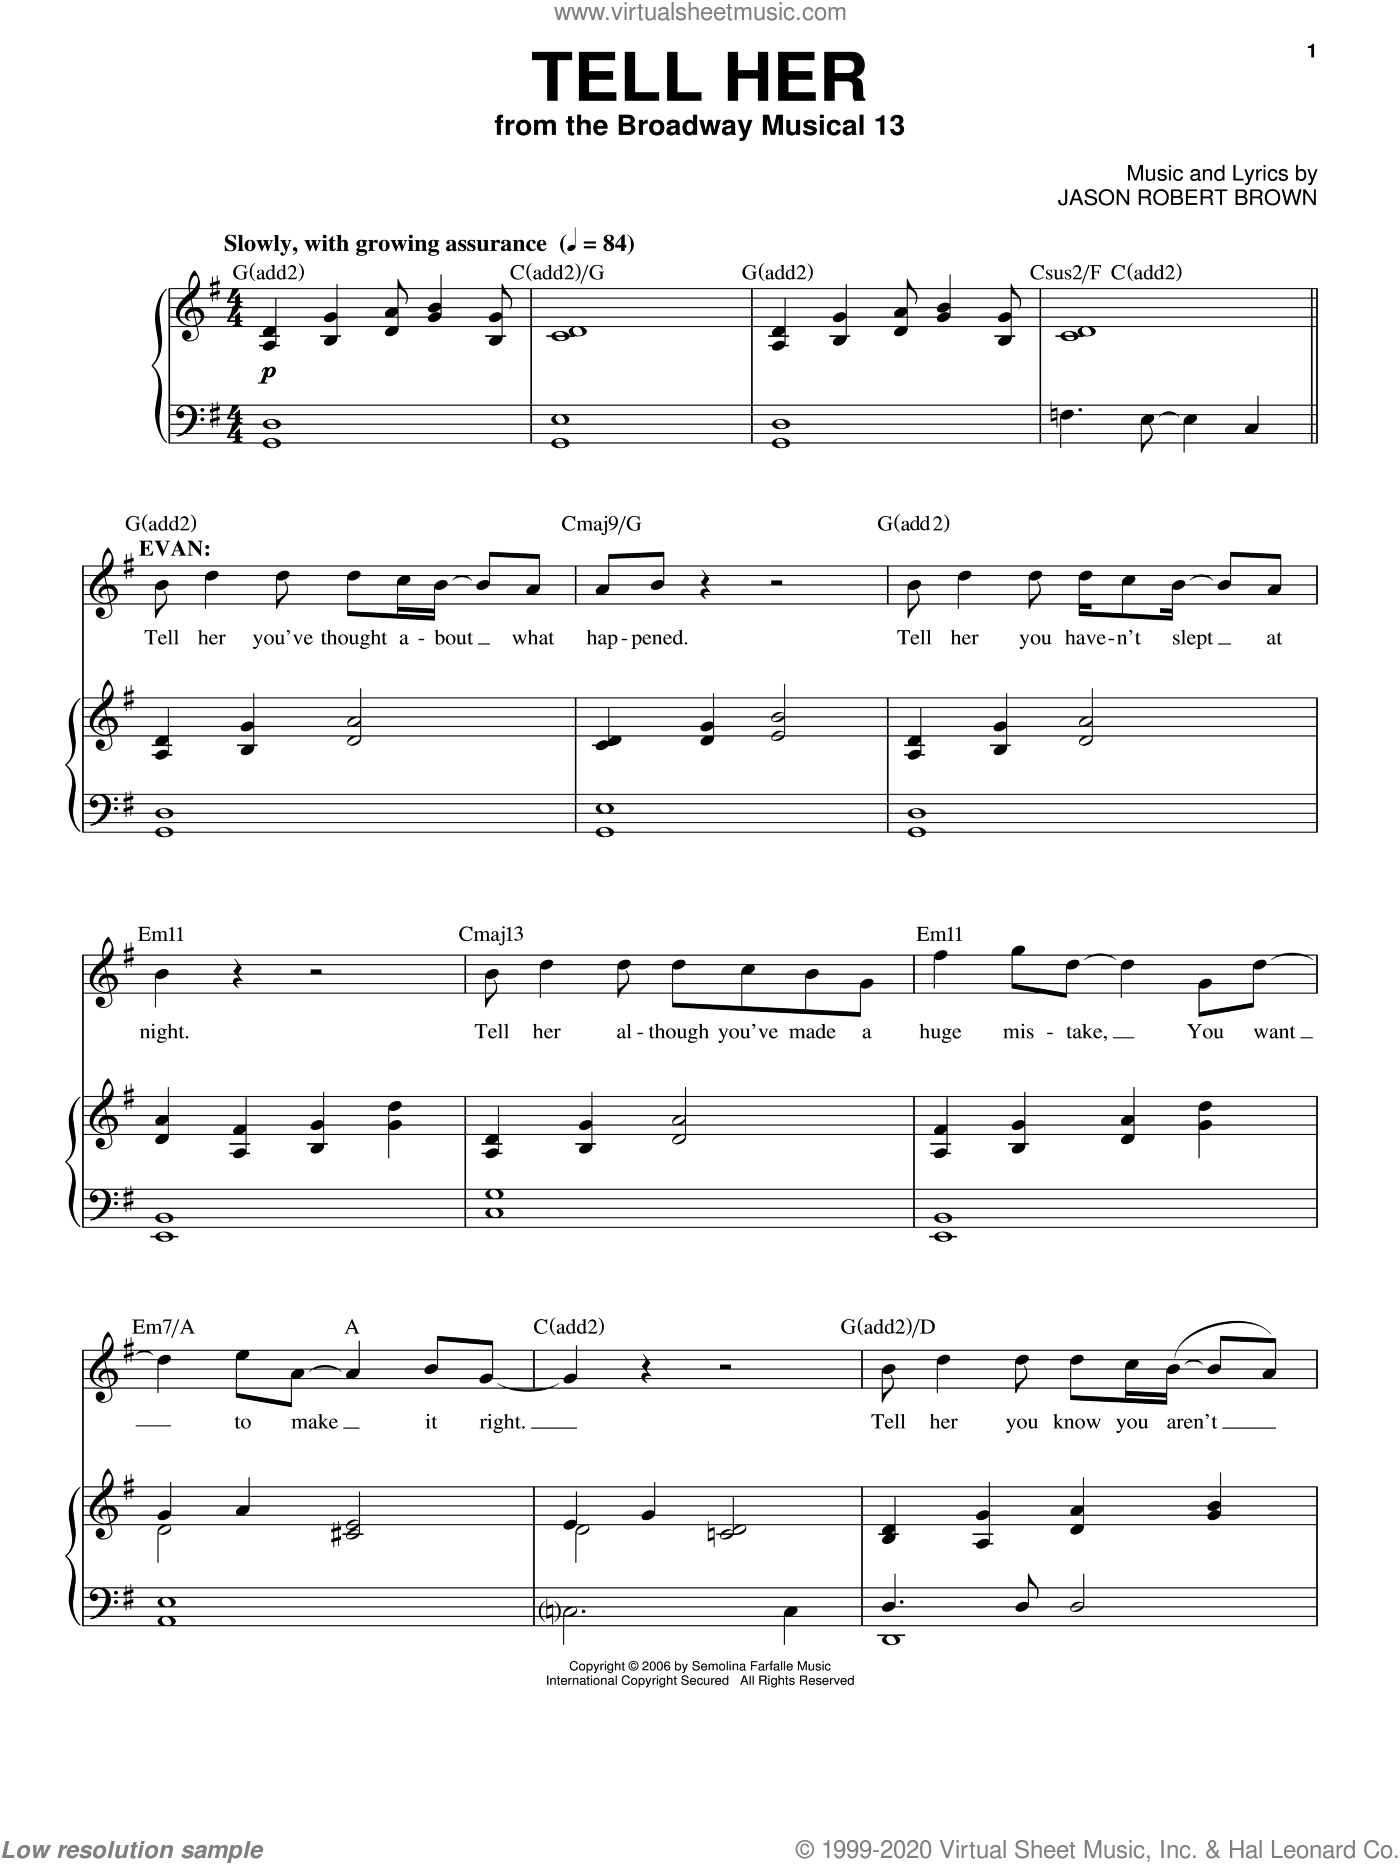 Tell Her sheet music for voice and piano by Jason Robert Brown